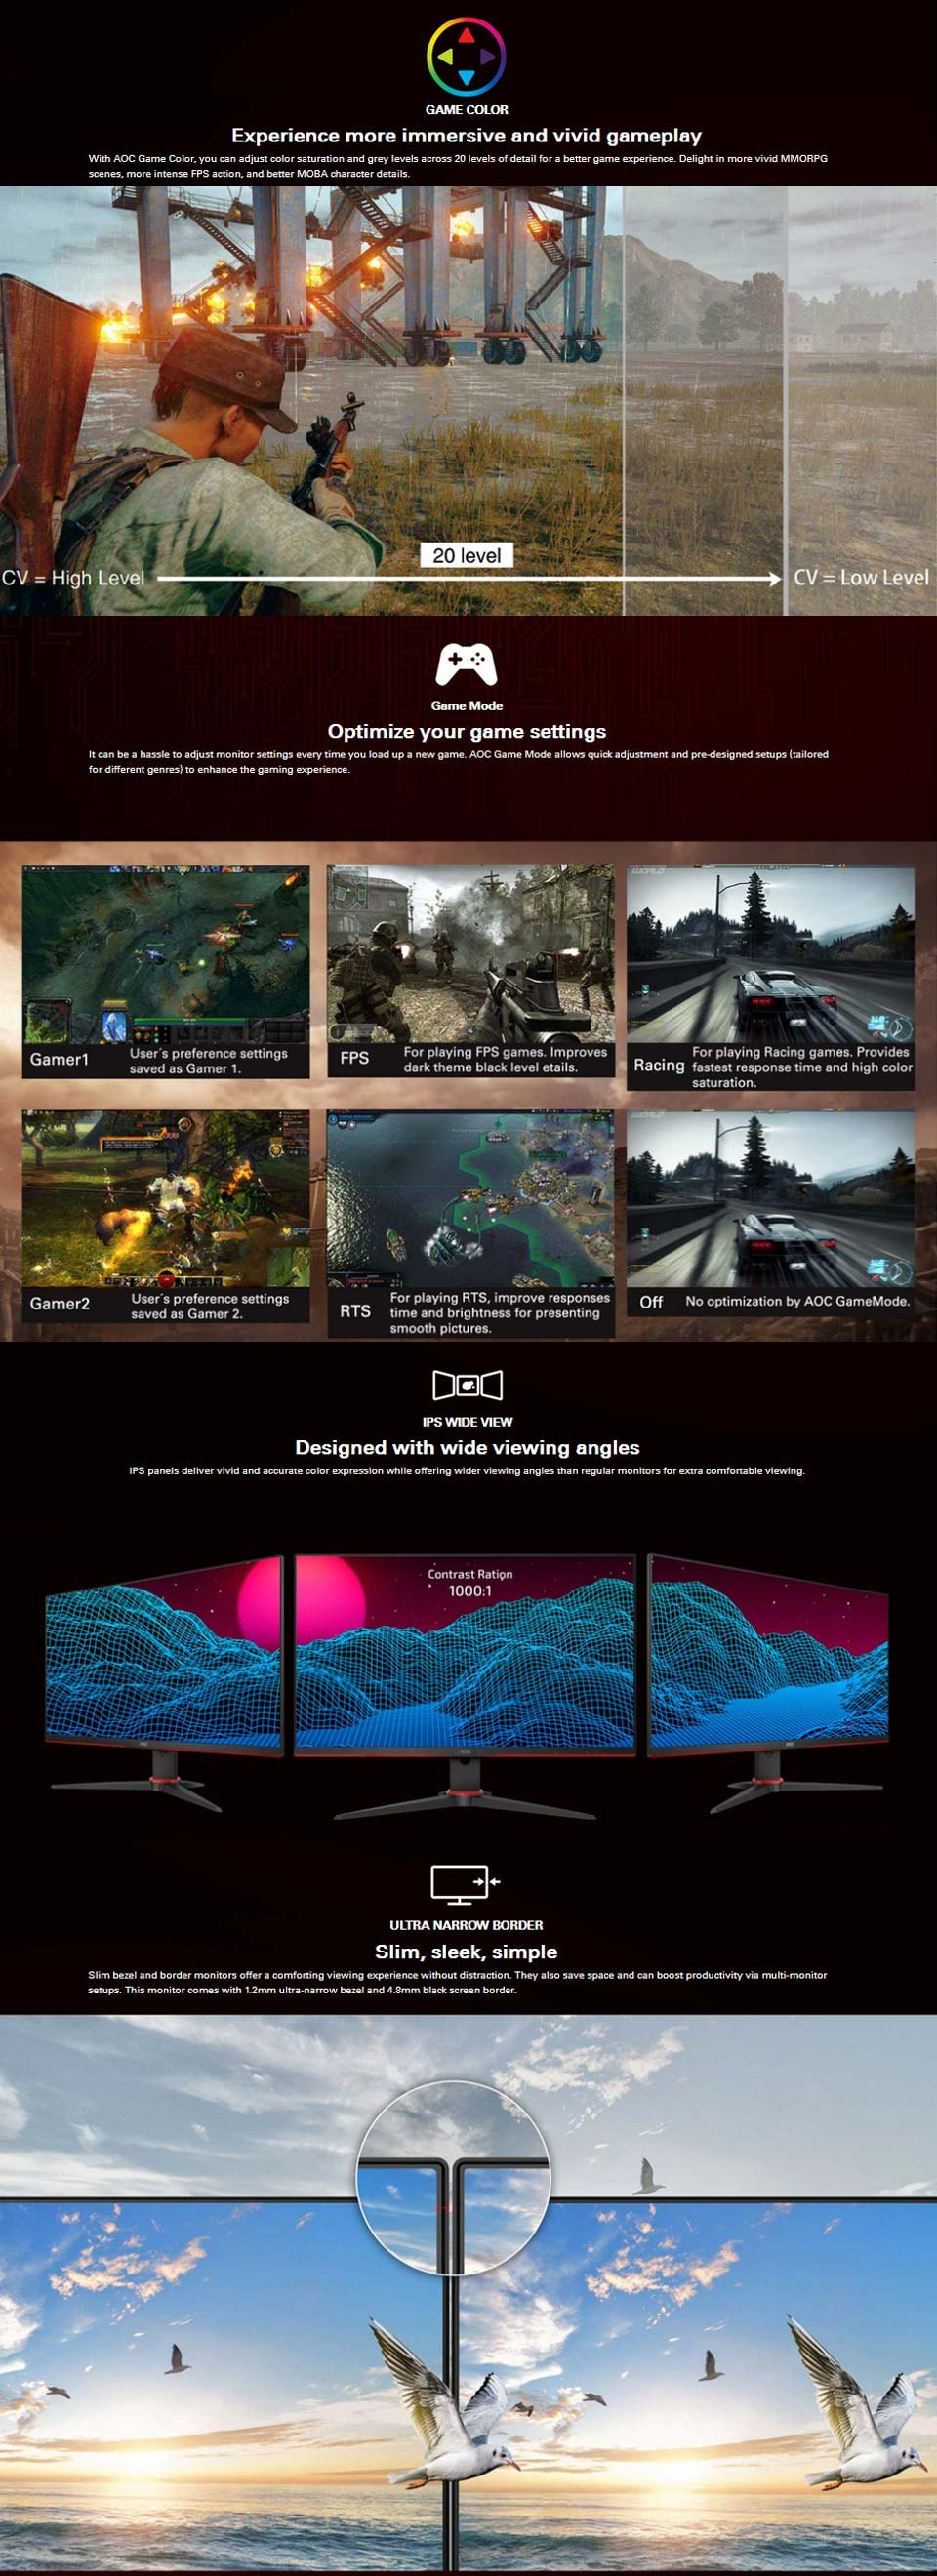 AOC 24G2E5 FHD Adaptive-Sync HDR IPS 23.8in Monitor features 3